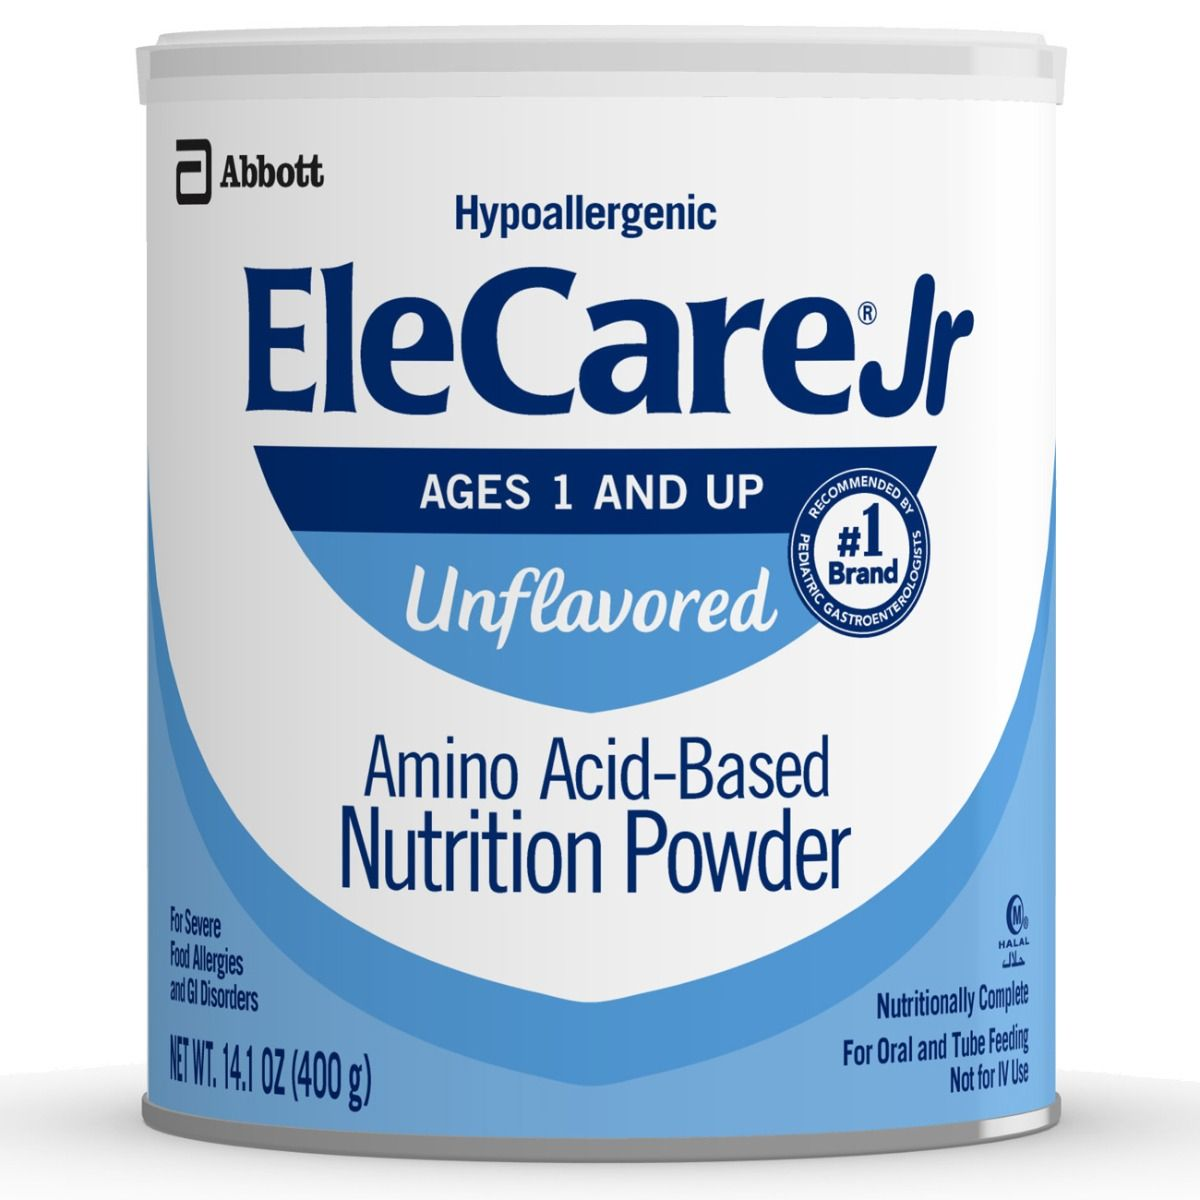 Abbott Nutrition Elecare Junior Powder 14 1 oz (Pack of 6)